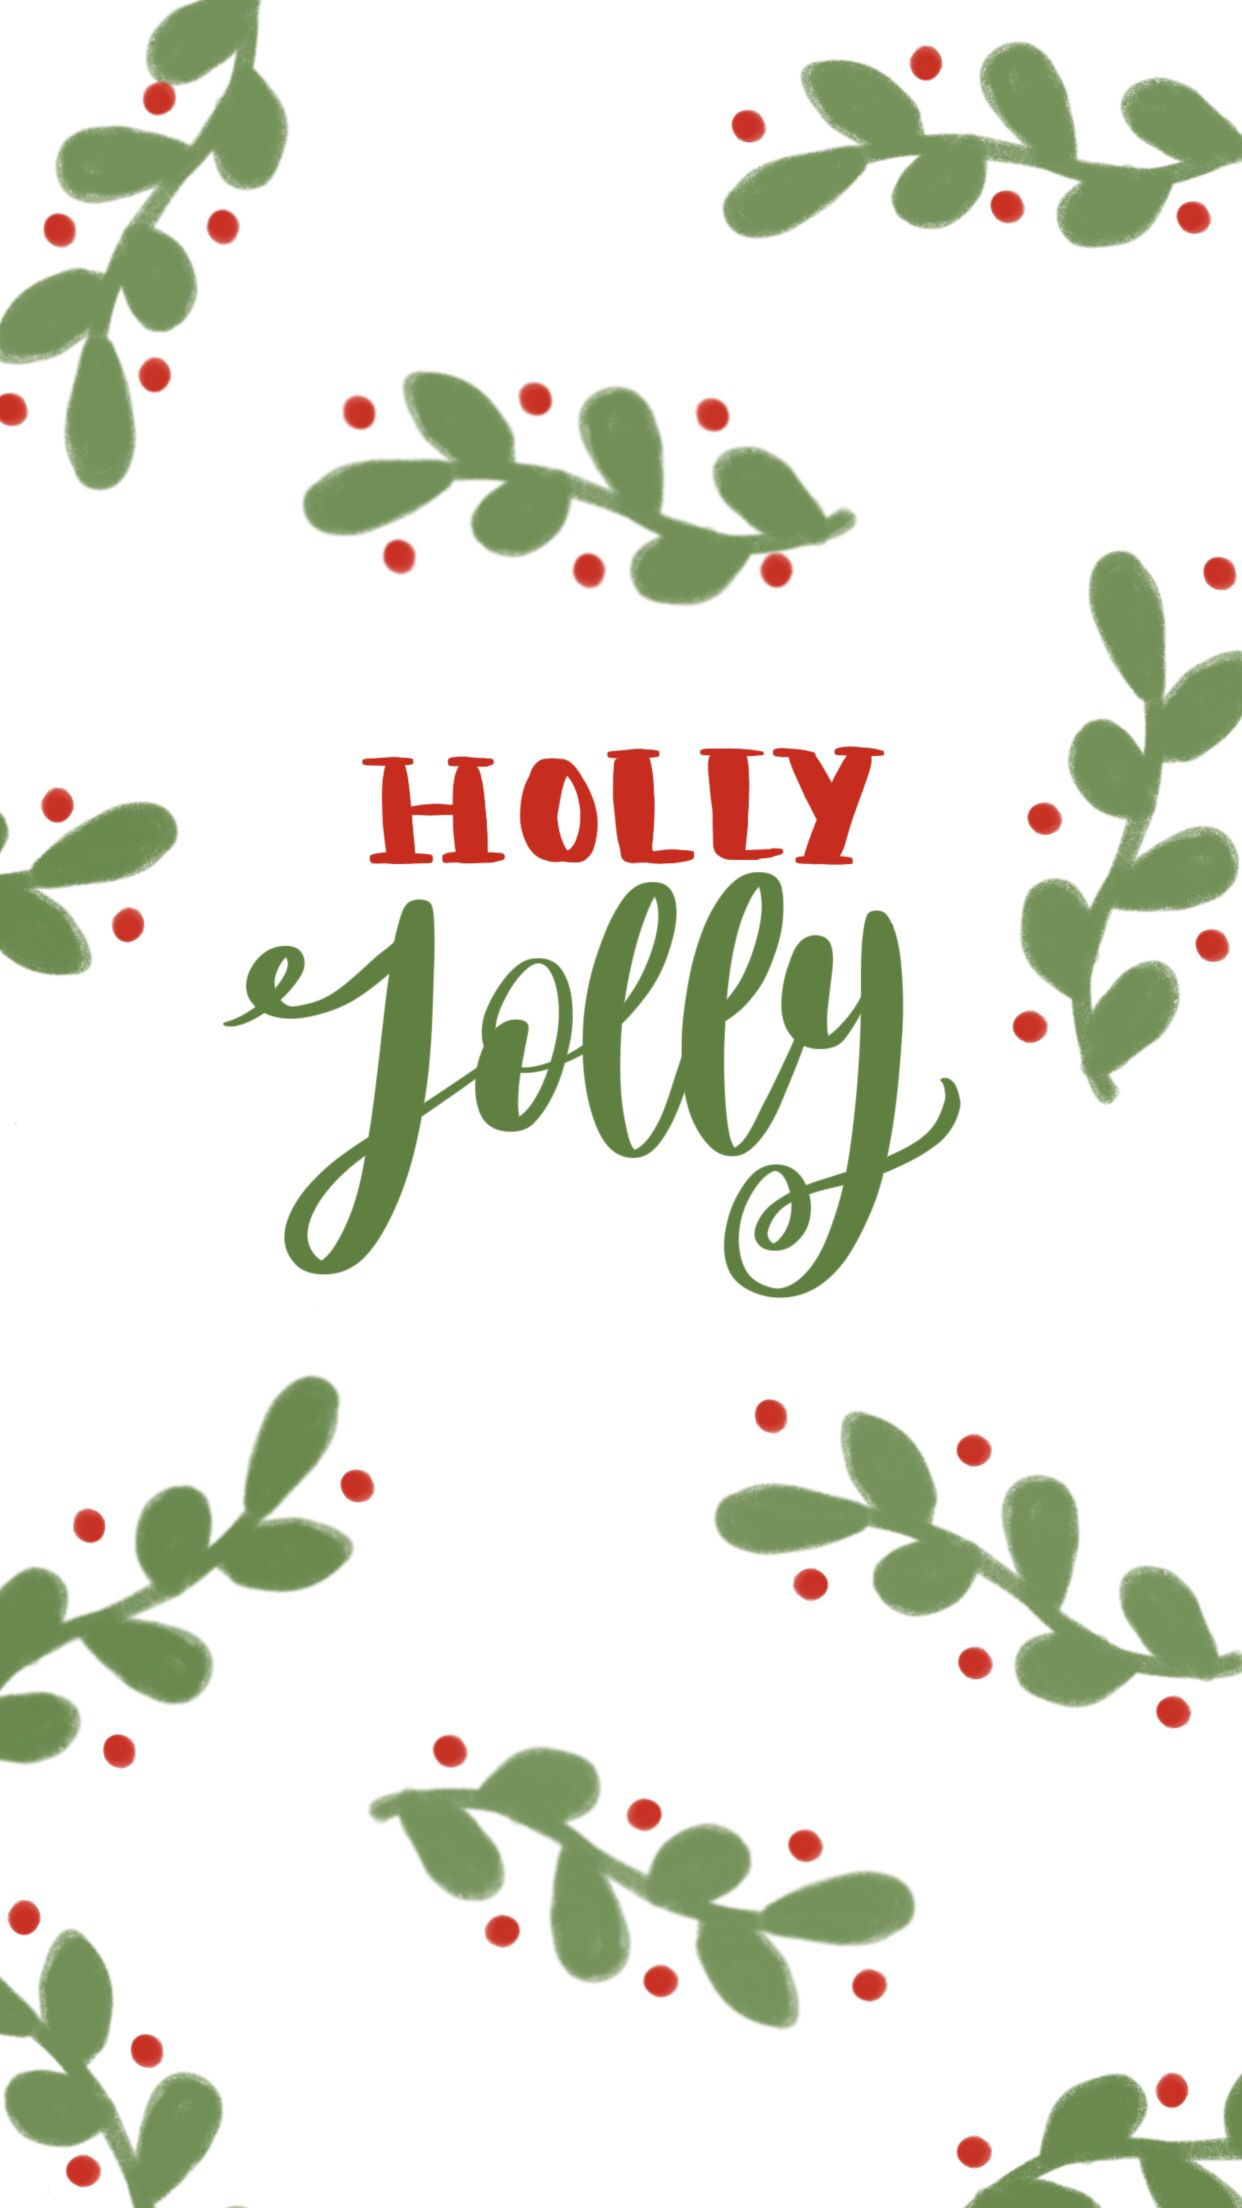 Free Iphone Wallpaper Quote Holly Jolly Christmas Free Iphone Wallpaper Free Iphone Wallpaper Quotes Free Iphone